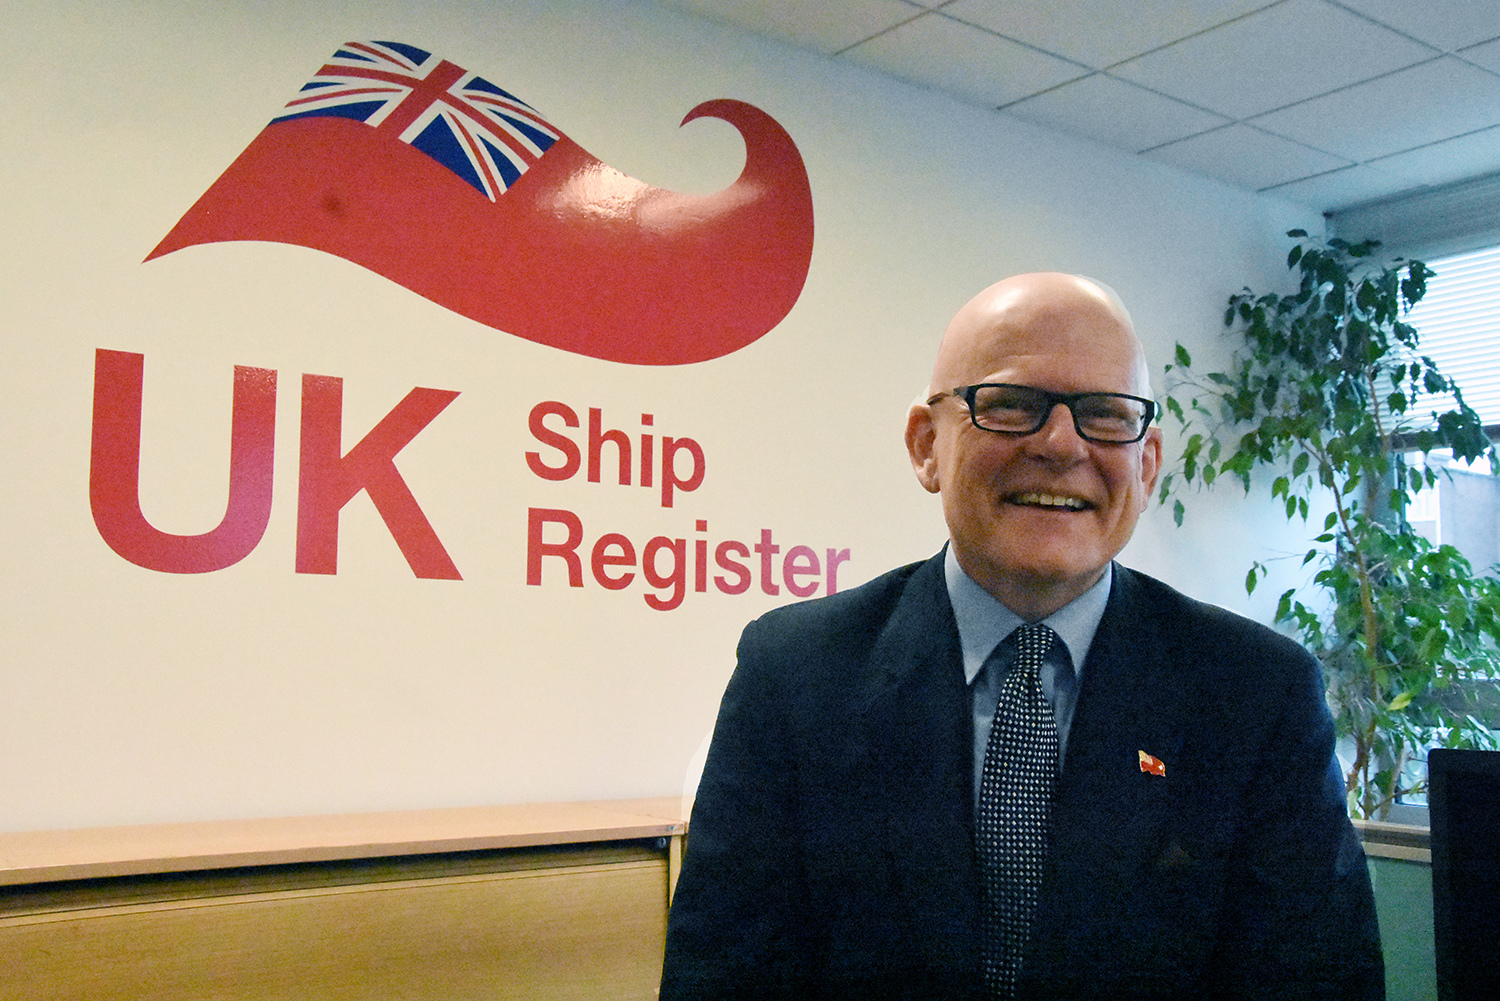 The UK Ship Register welcomes new Commercial Director